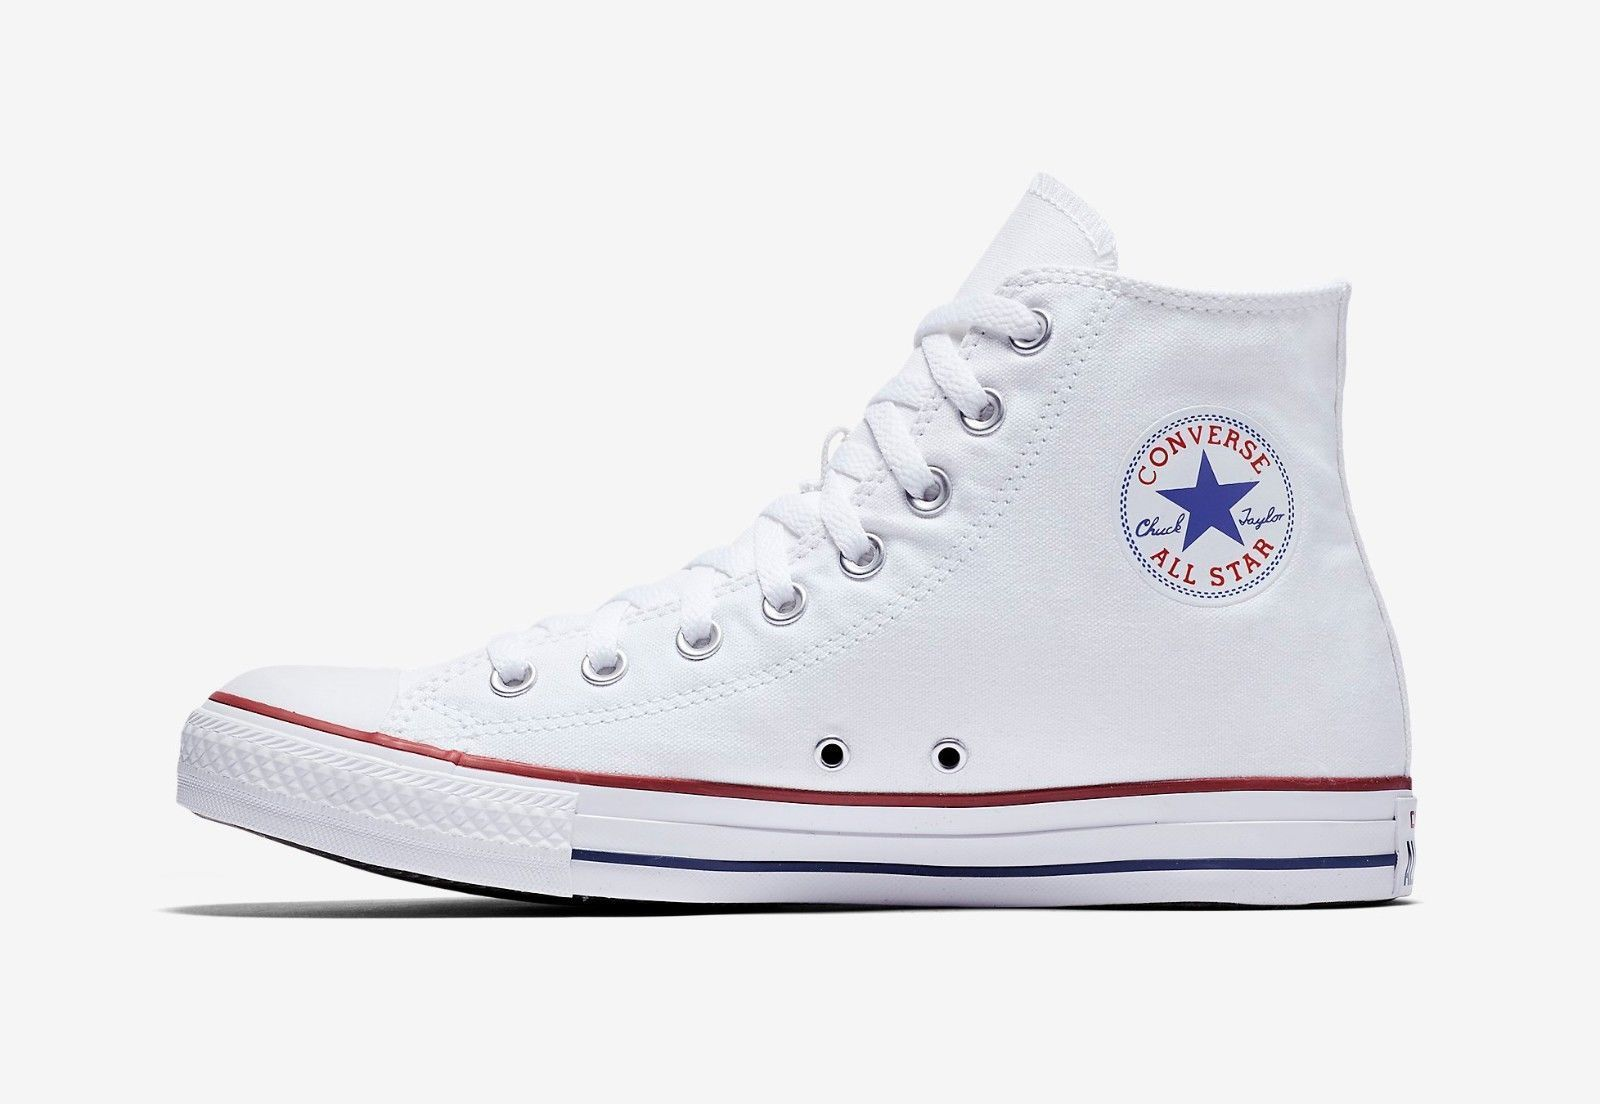 03113f3ec98 Converse Chuck Taylor All Star High Top Canvas Women Shoes M7650 - Optical  White